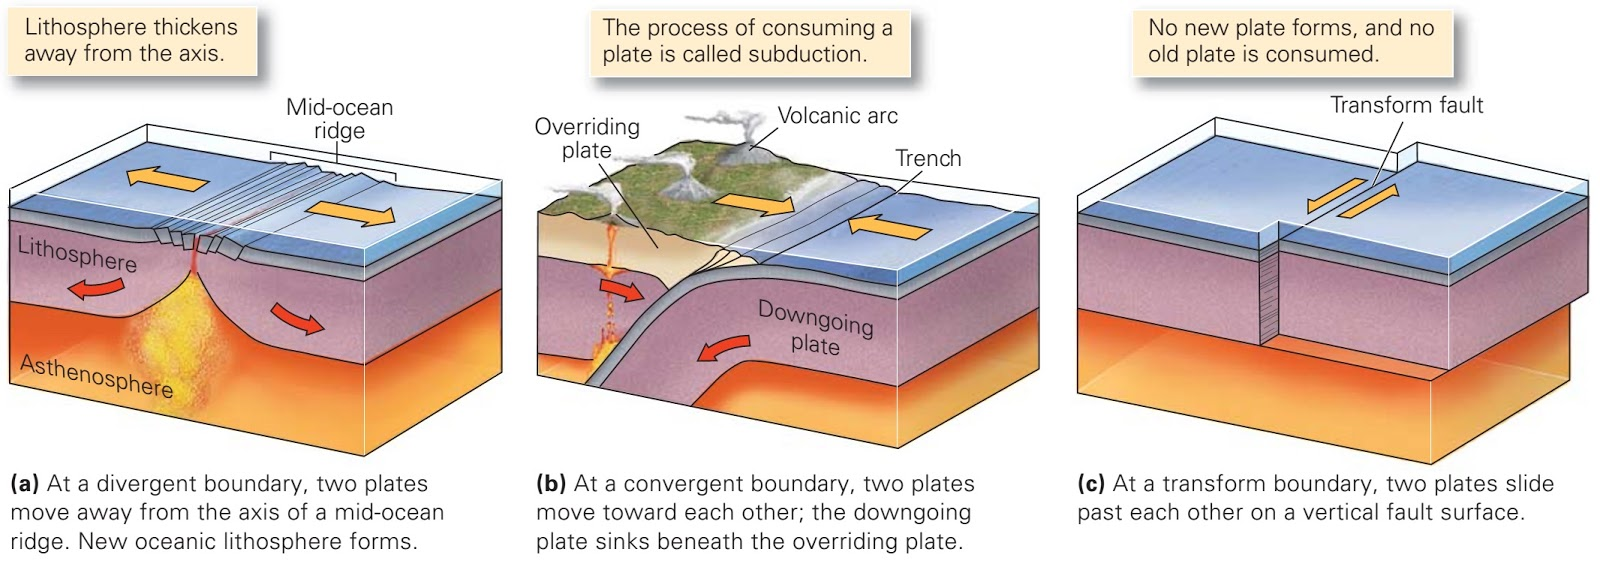 February 2016 learning geology the three types of plate boundaries differ based on the nature of relative movement ccuart Choice Image